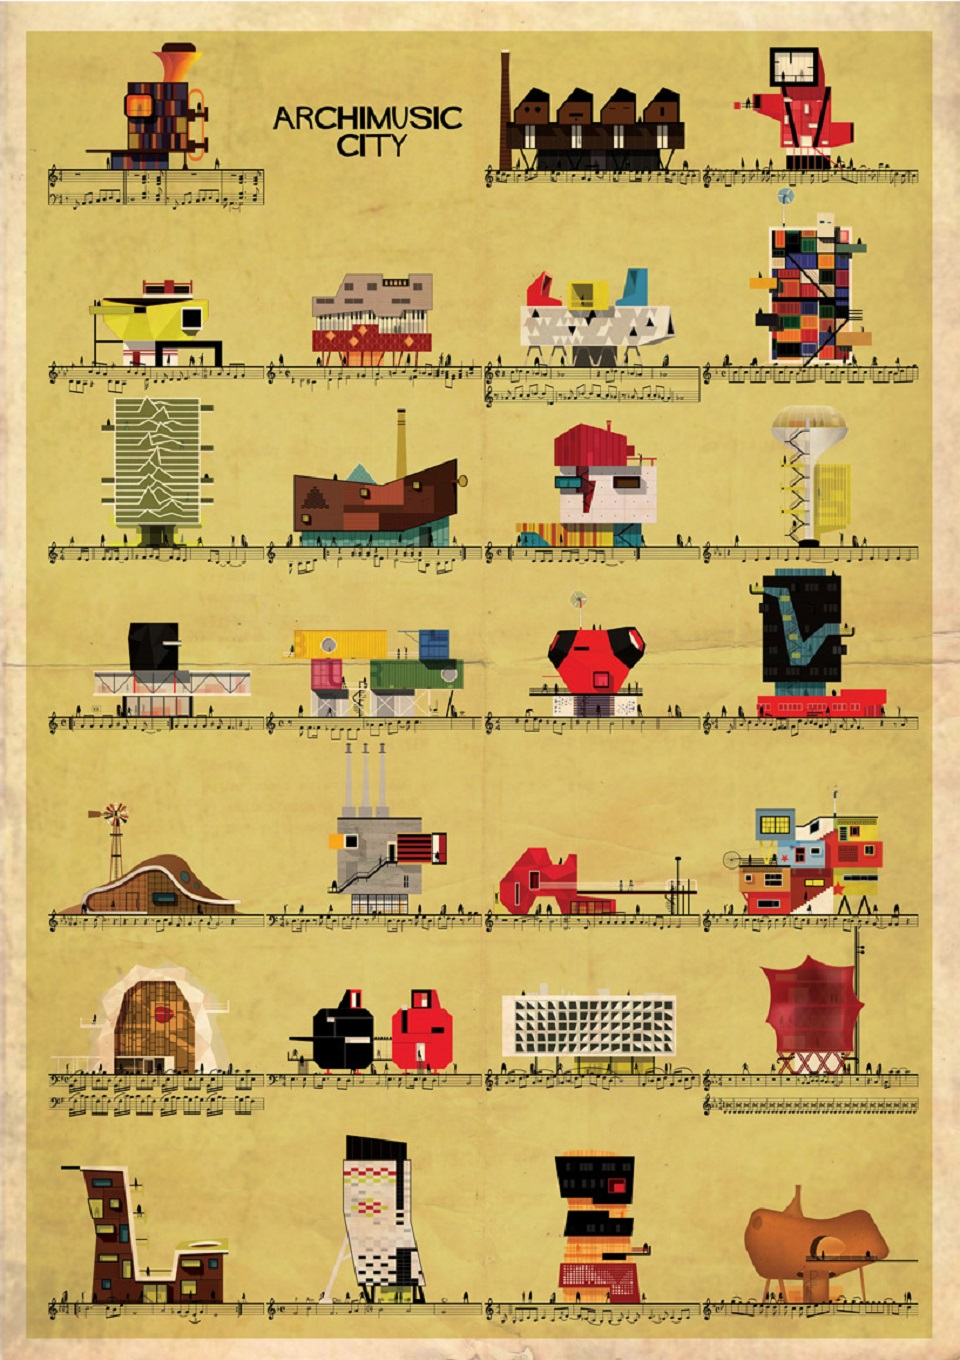 Archimusic City by Federico Babina - where songs become buildings